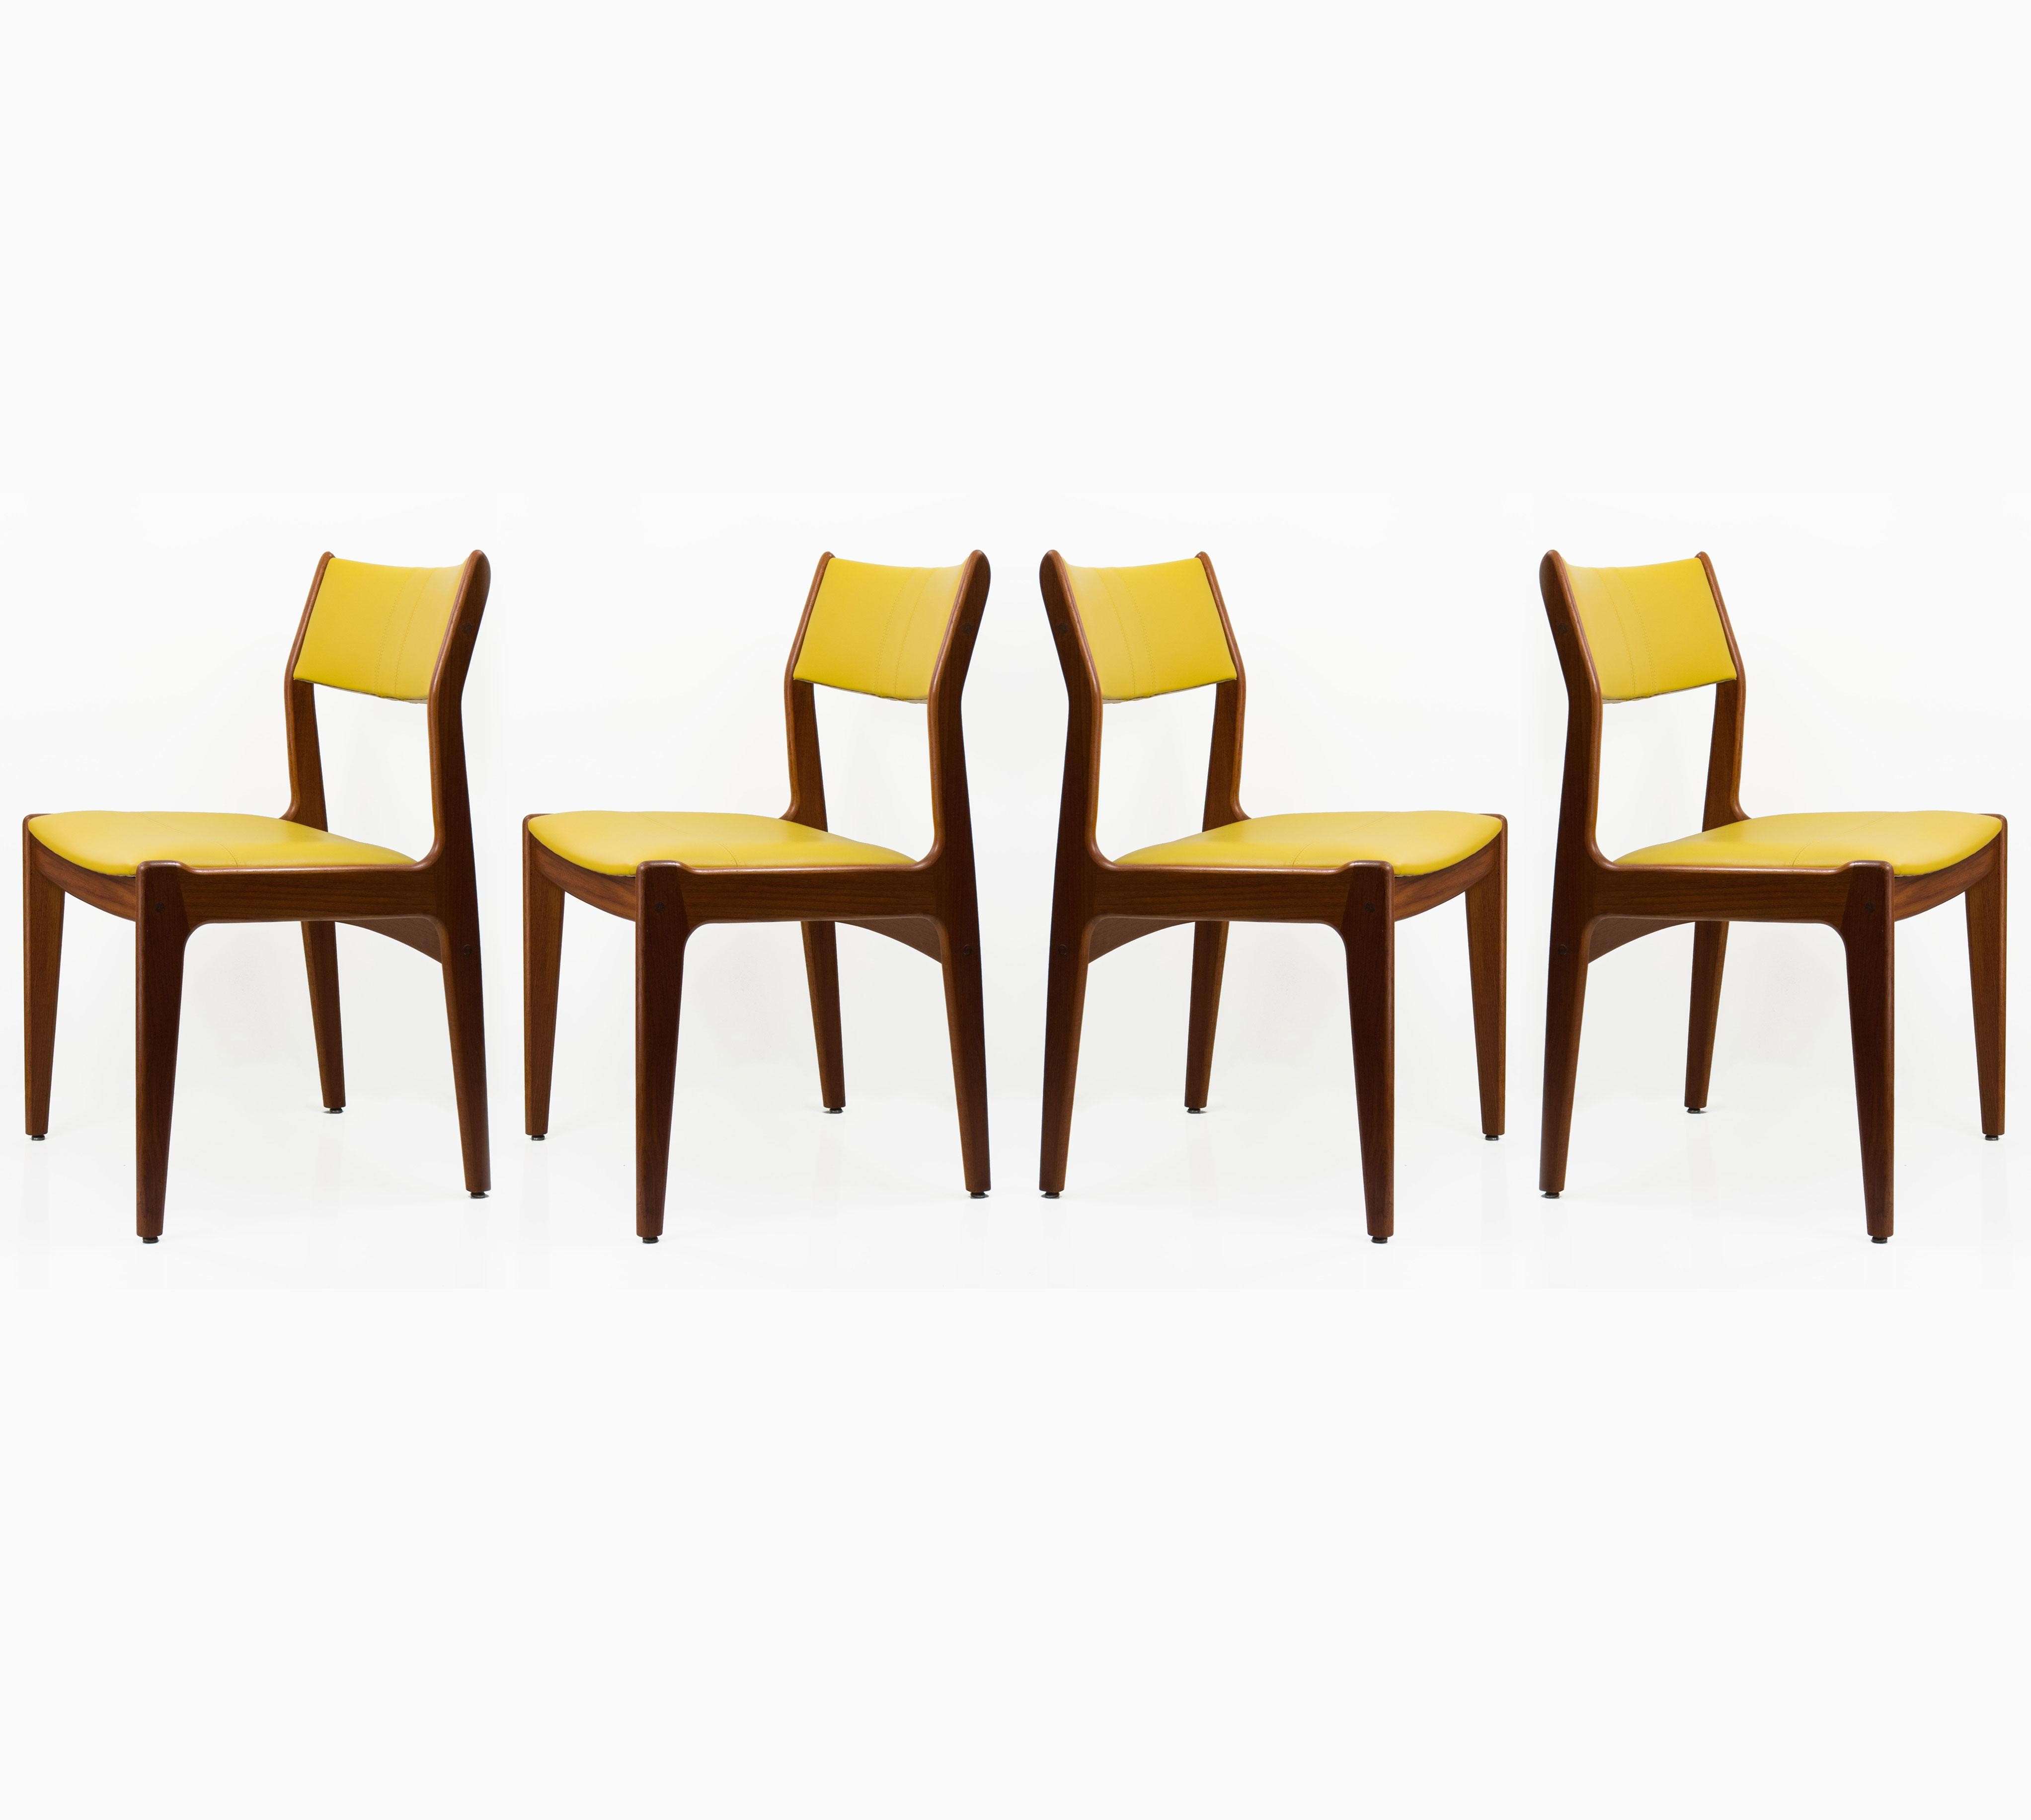 Charmant Mid 20th Century Mid Century Danish Style Leather U0026 Teak Chairs  Set Of 4